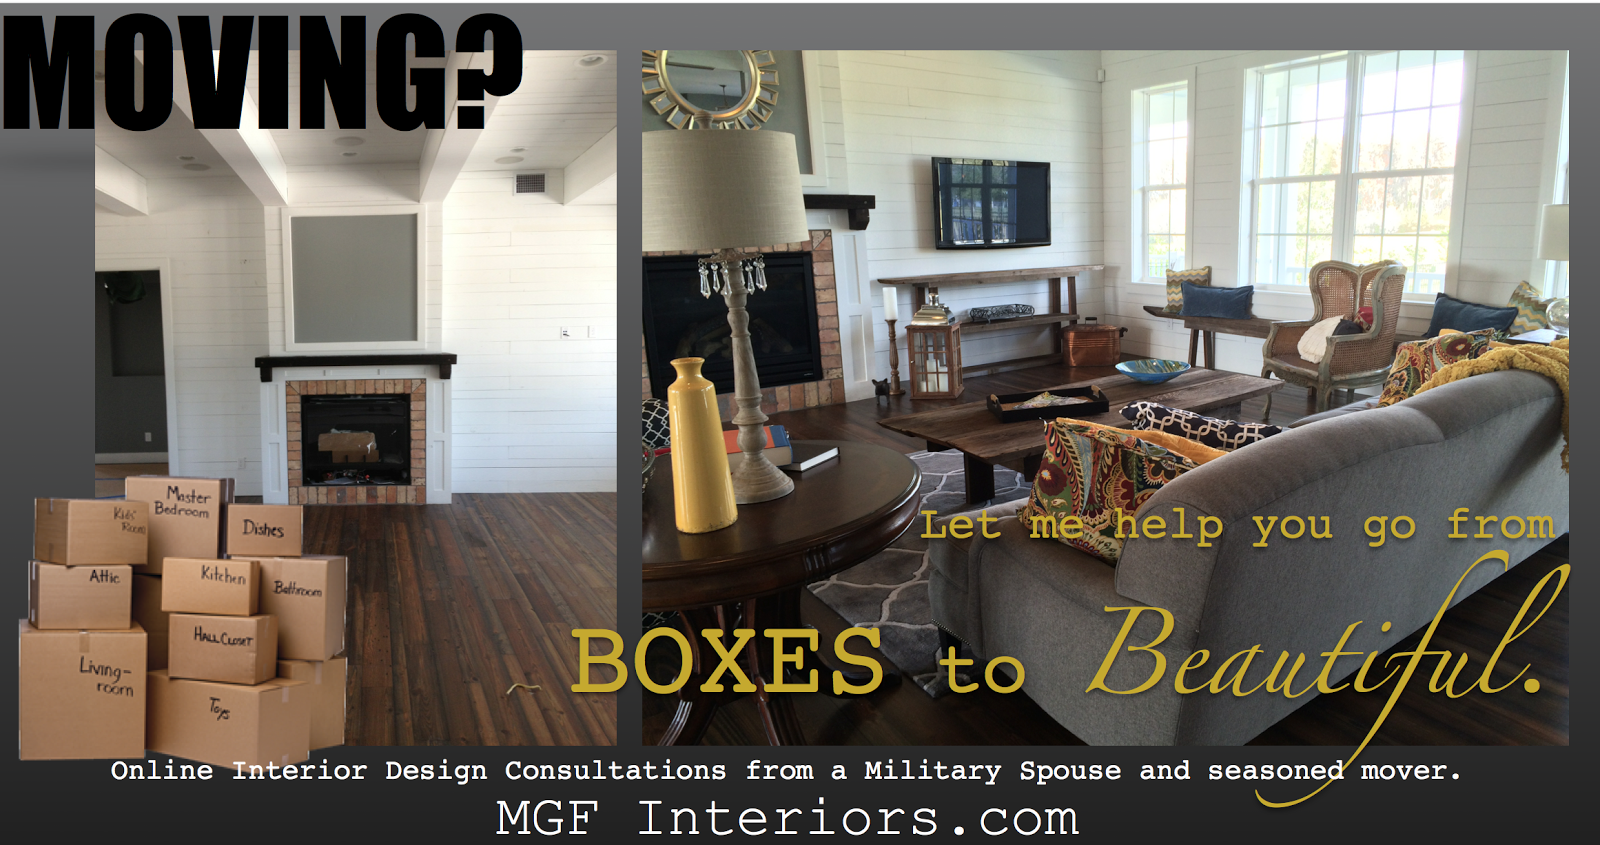 MGF Interiors PCS e-design